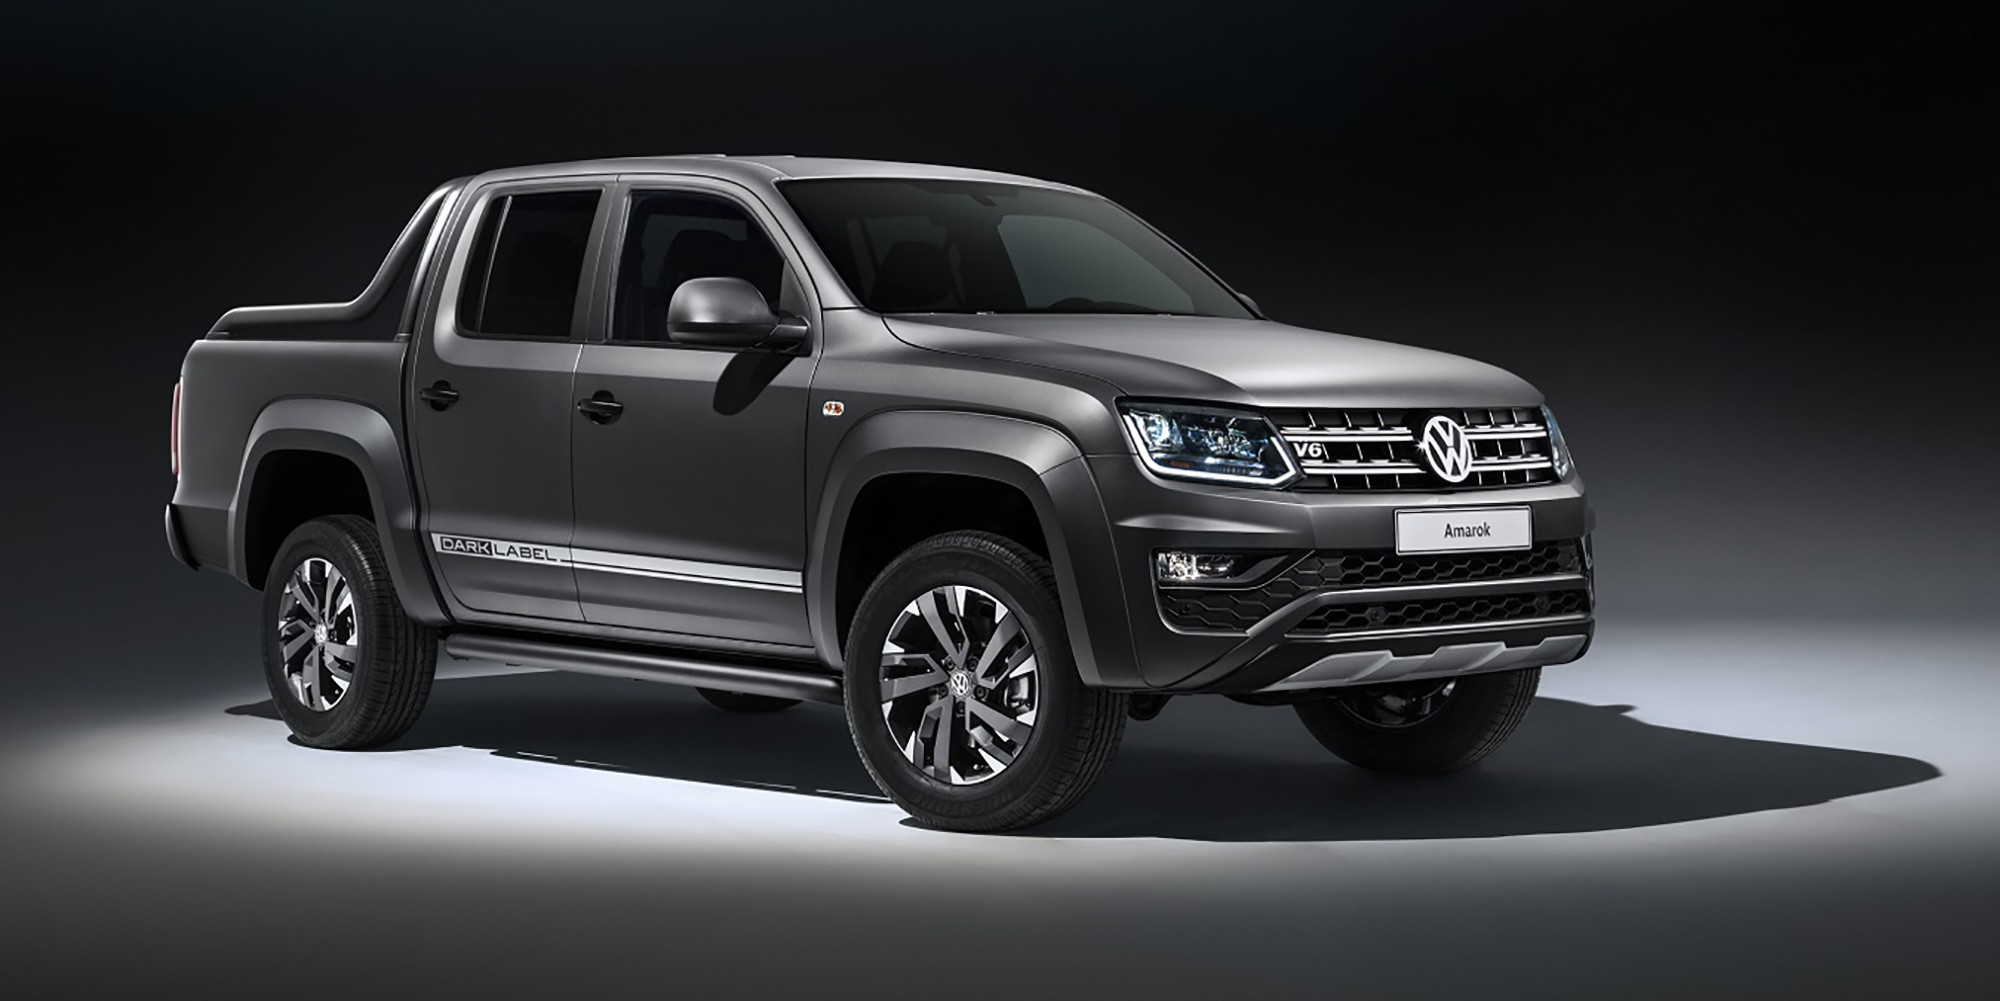 Volkswagen Amarok 2017 >> Volkswagen Amarok Aventura Exclusive: 190kW ute concept revealed for Frankfurt - photos | CarAdvice